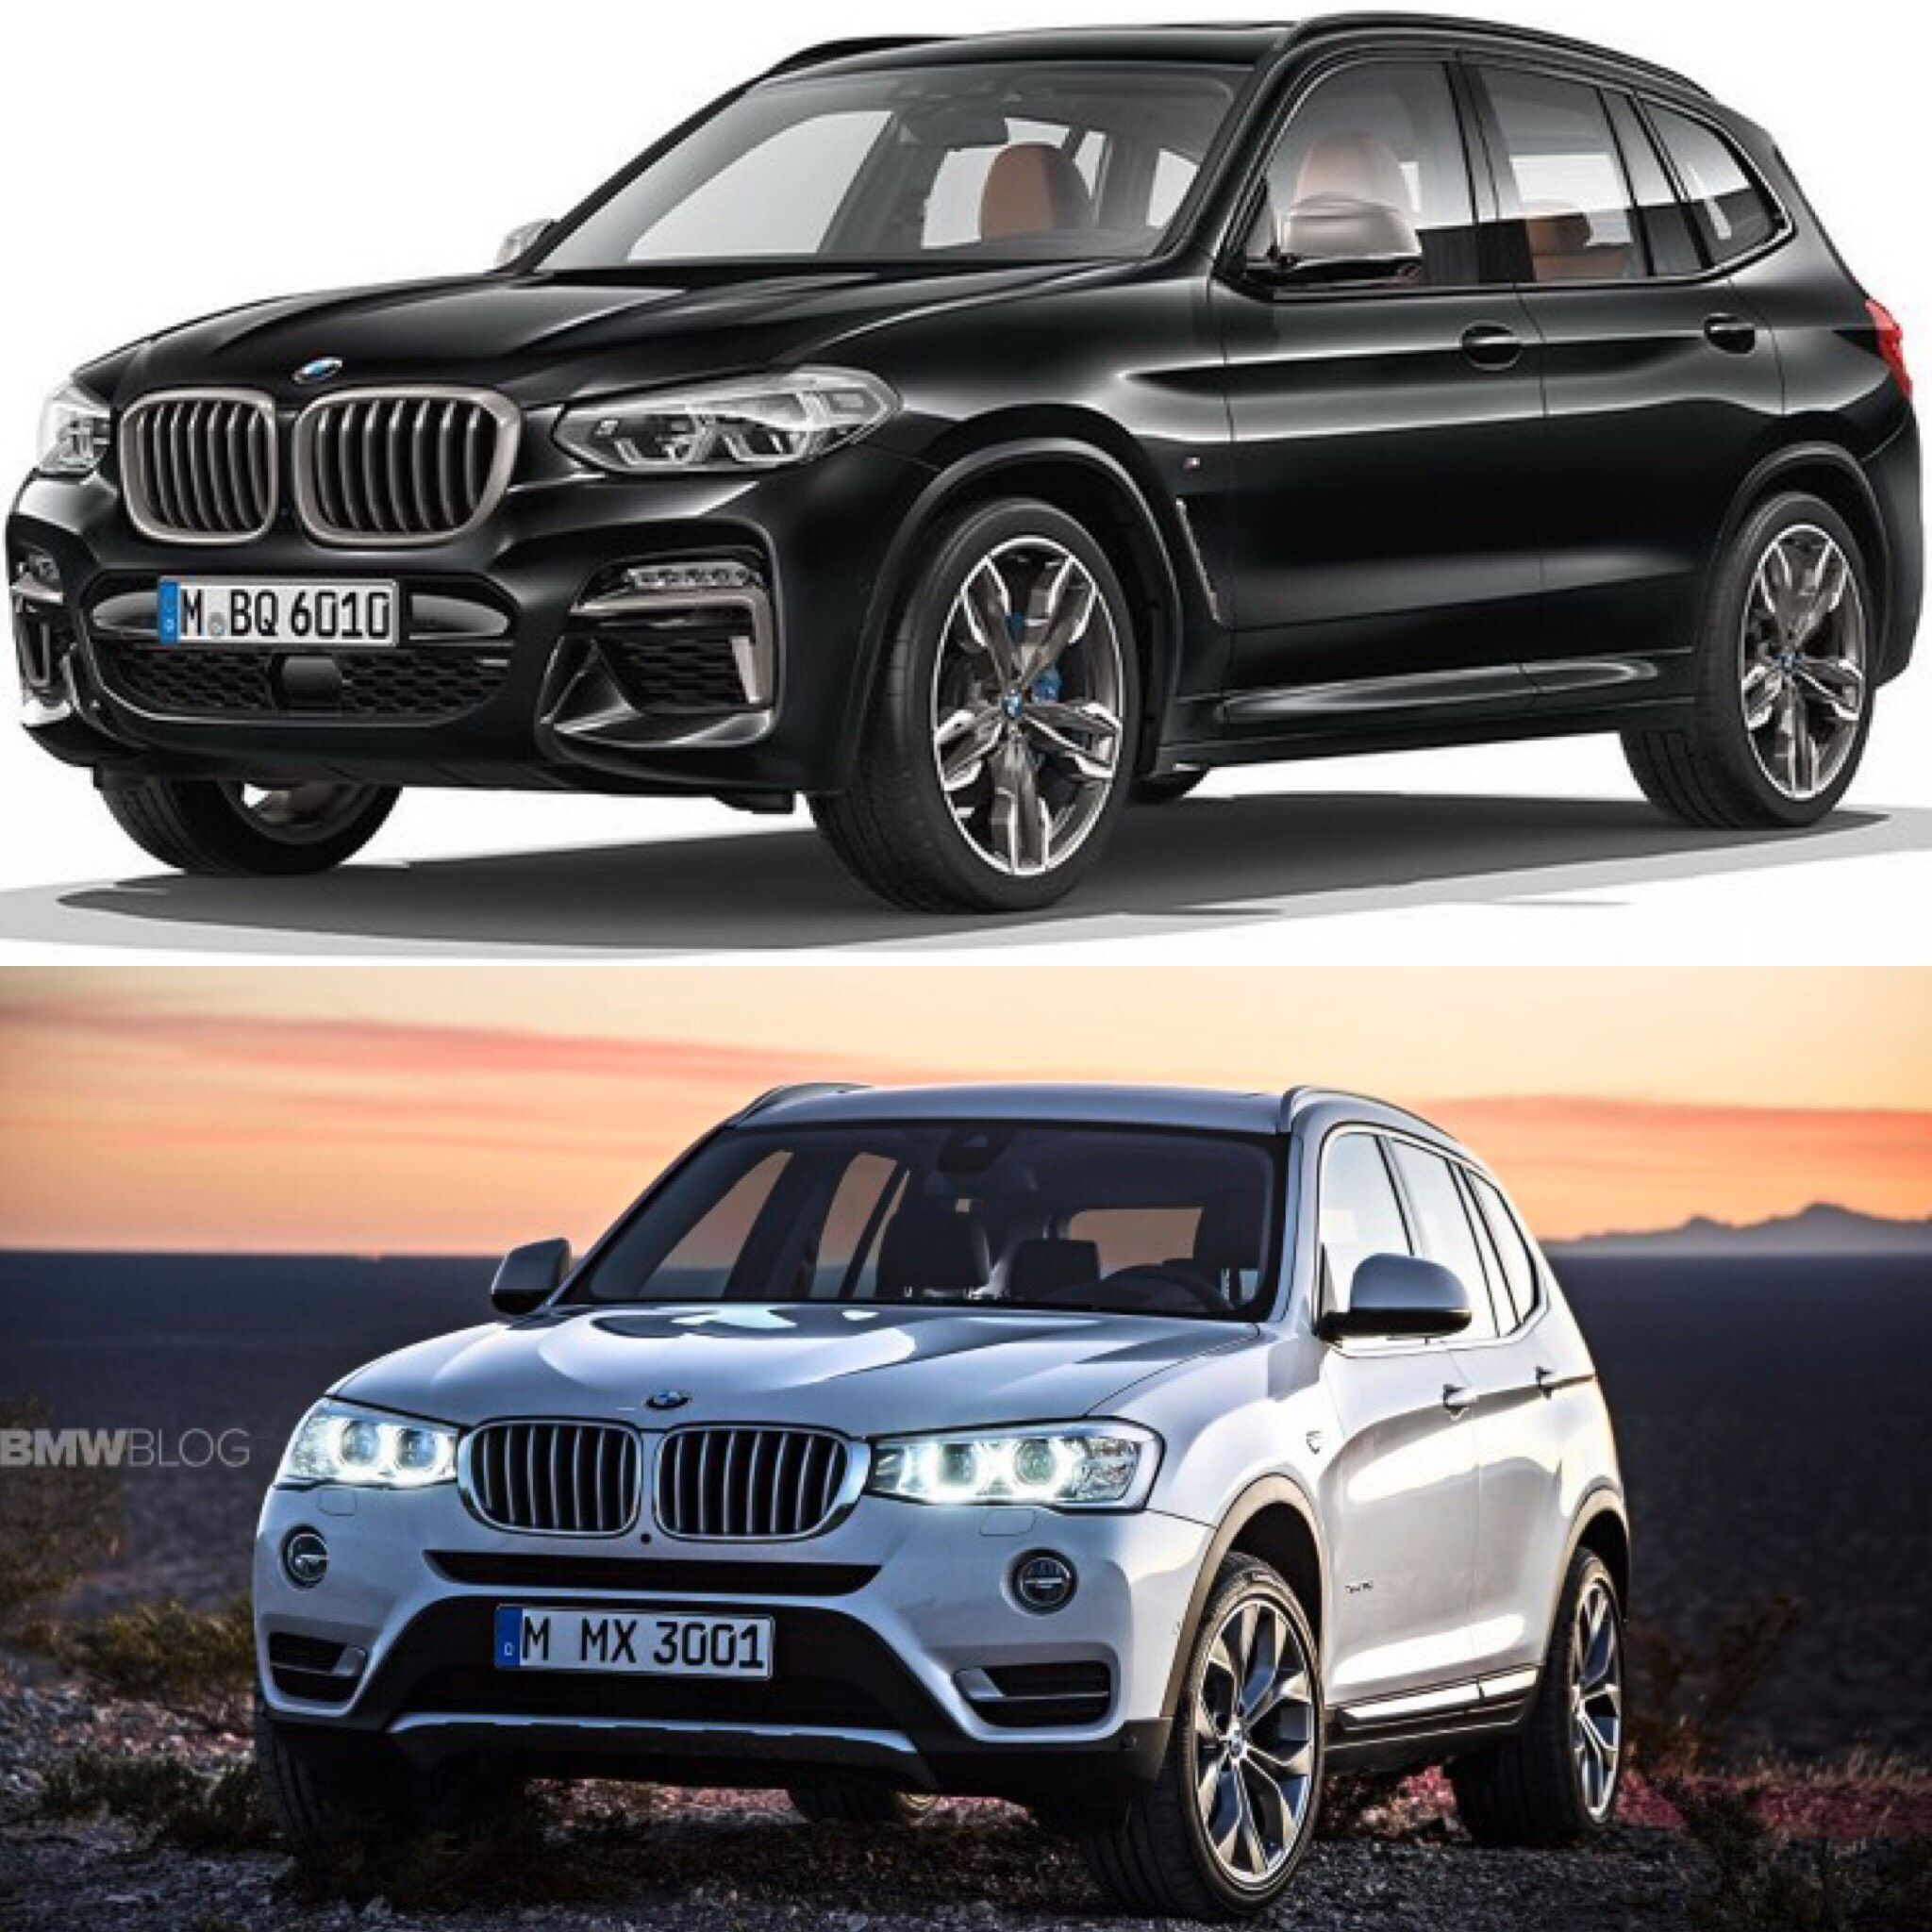 Photo Comparison: G01 BMW X3 Vs F25 BMW X3